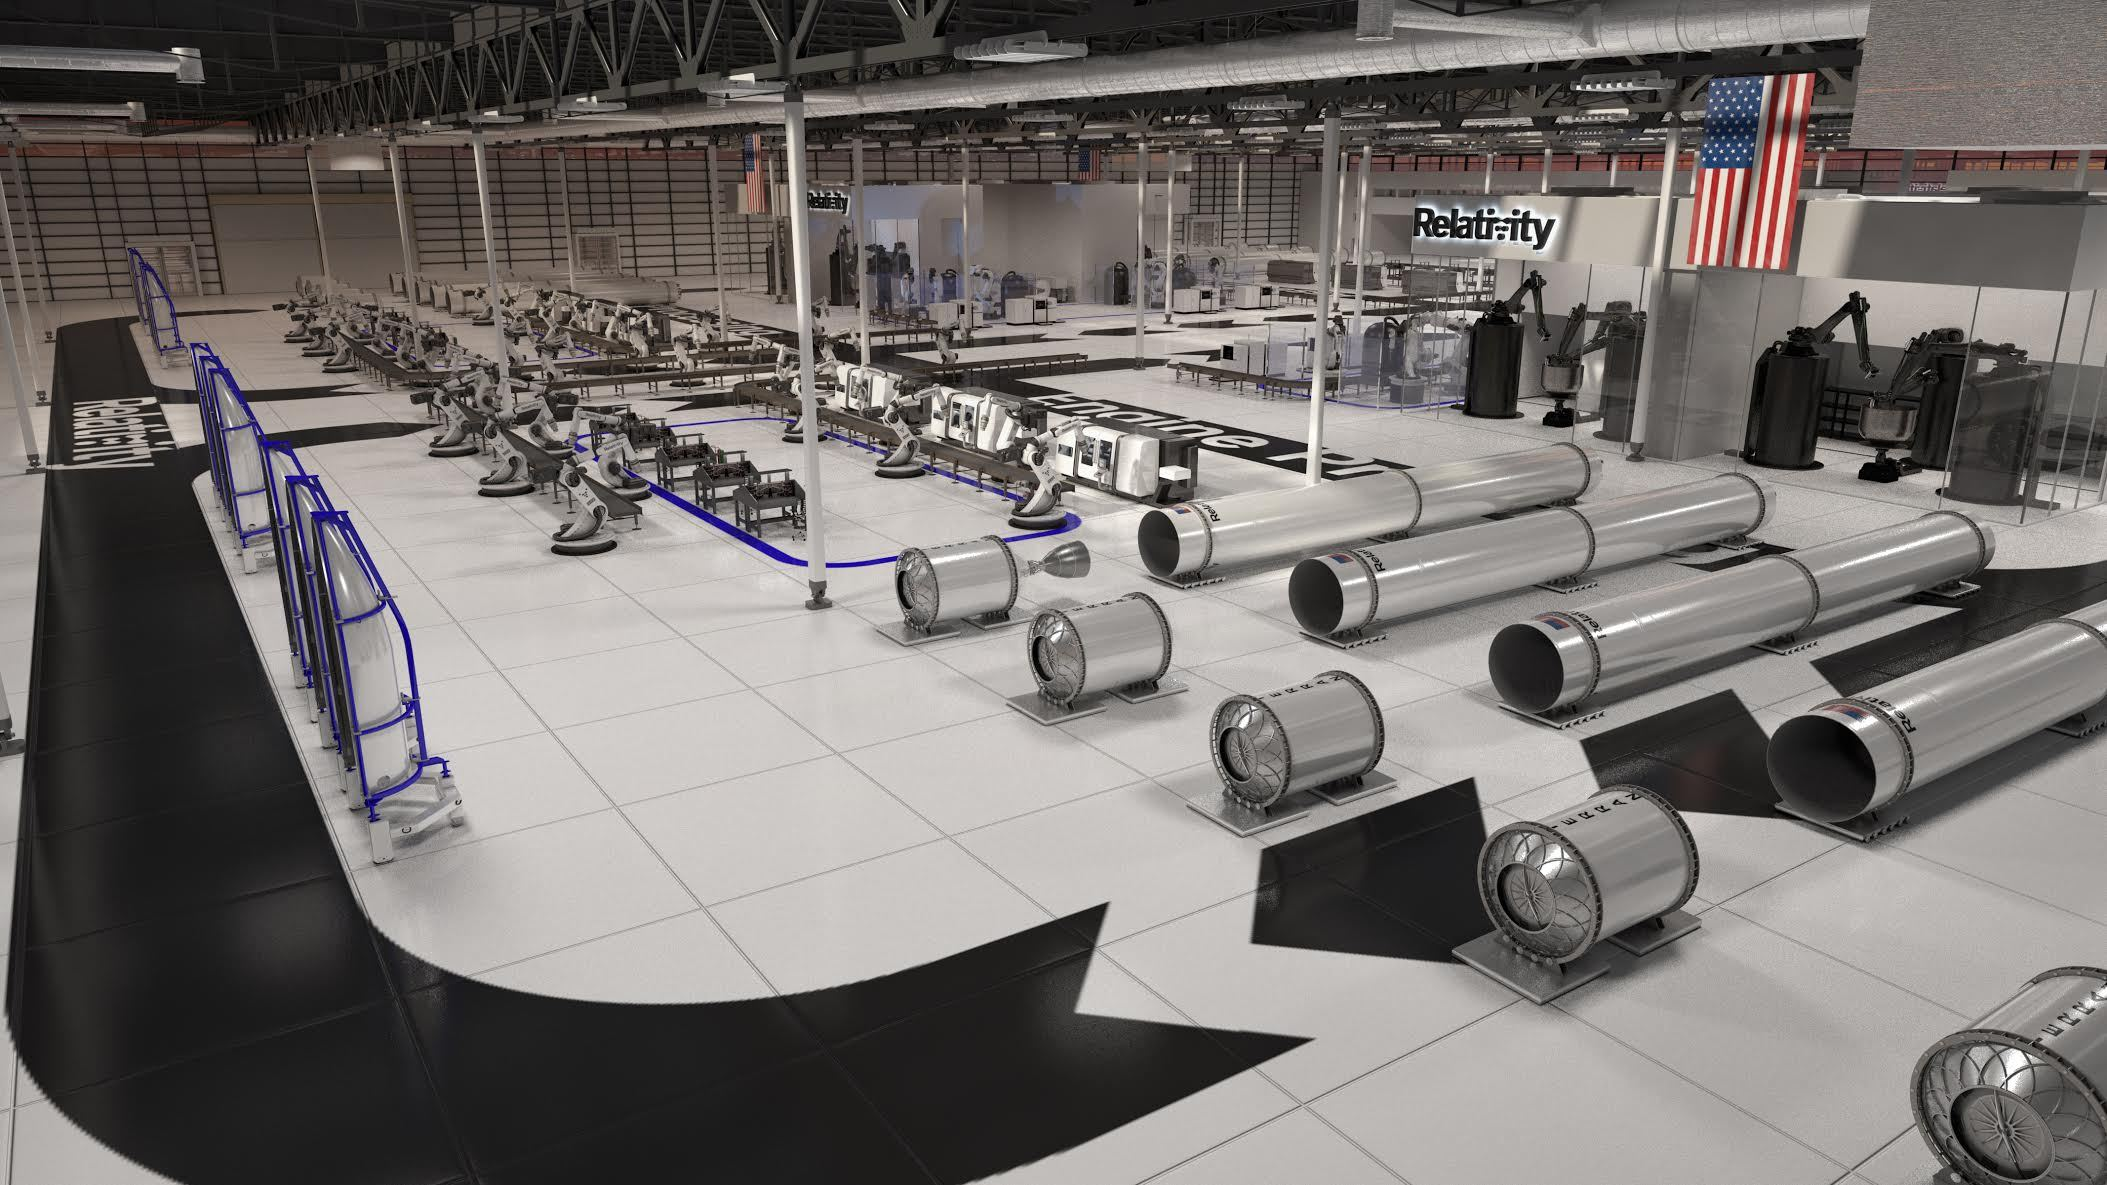 Rendering of Relativity's autonomous rocket factory at NASA Stennis Space Center in Mississippi. Image via Relativity Space/Business Wire